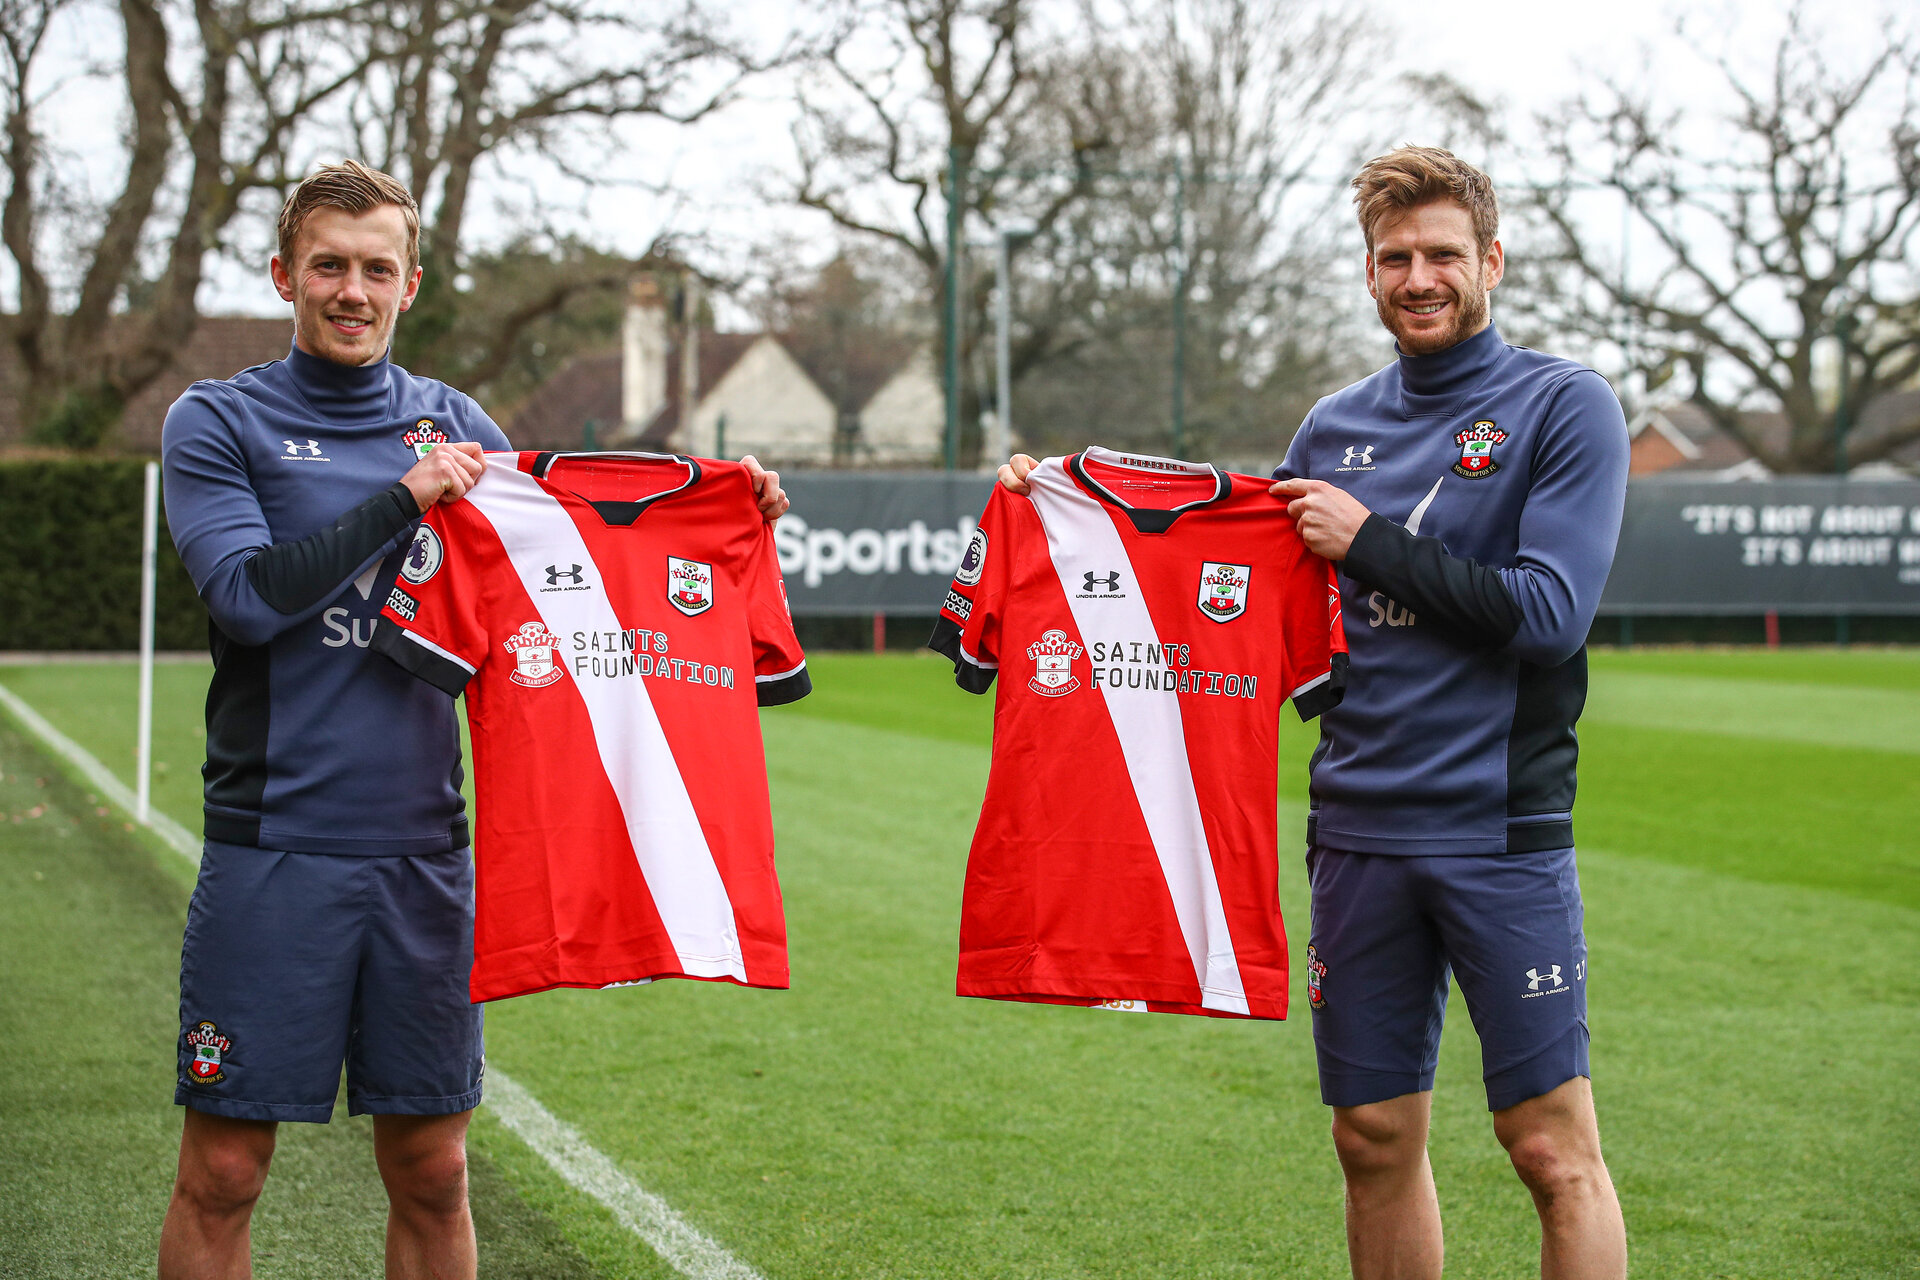 SOUTHAMPTON, ENGLAND - MARCH 18: James Ward-Prowse(L) and Stuart Armstrong hold a shirt that will feature Saints Foundation branding on the front of the shirt for the upcoming fixture against Burnley, pictured at the Staplewood Campus on March 18, 2021 in Southampton, England. (Photo by Matt Watson/Southampton FC via Getty Images)